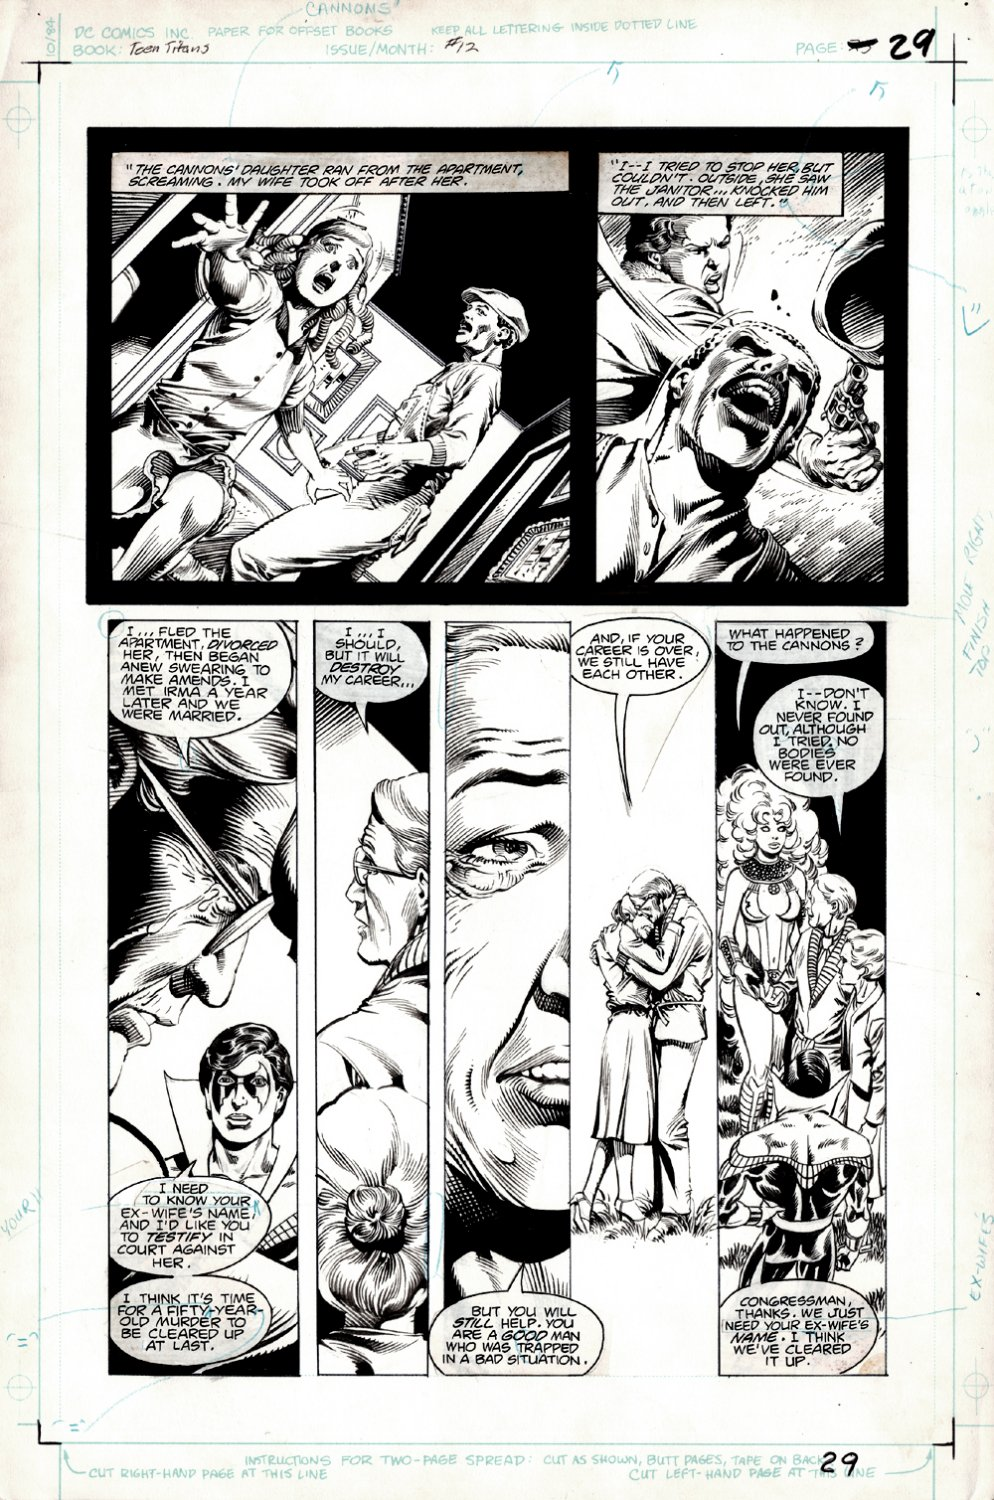 New Teen Titans #12 p 25 (SOLD LIVE ON 'DUELING DEALERS OF COMIC ART' EPISODE #10 PODCAST ON 3-31-2021 (RE-WATCH OUR LIVE ART SELLING PODCAST HERE!)